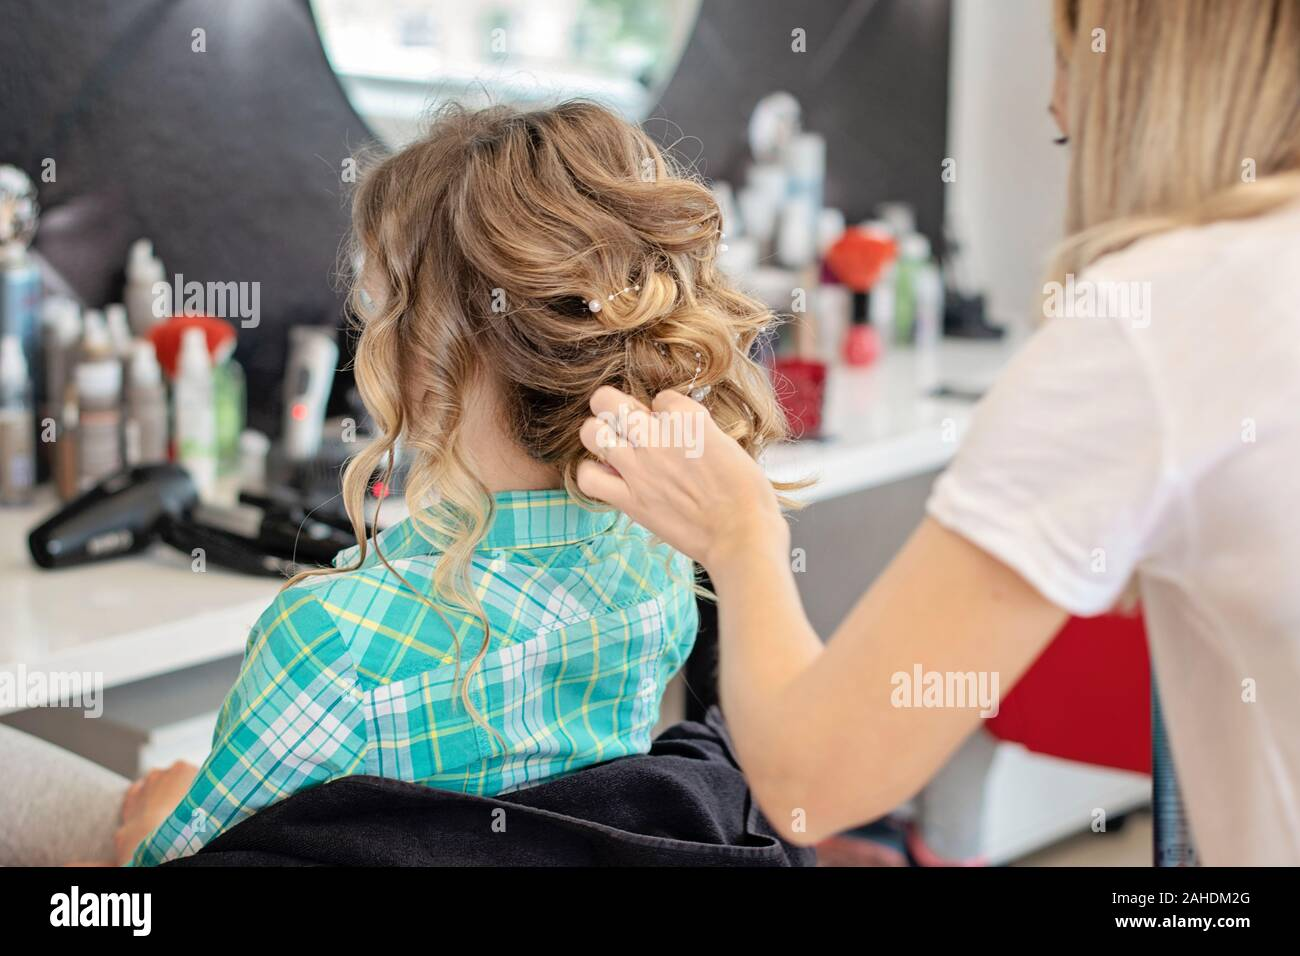 Beautiful Curly Special Occasion Hairstyle Hairdresser Makes Hairstyle Young Blonde Hair Lady In Barber Salon Stock Photo Alamy